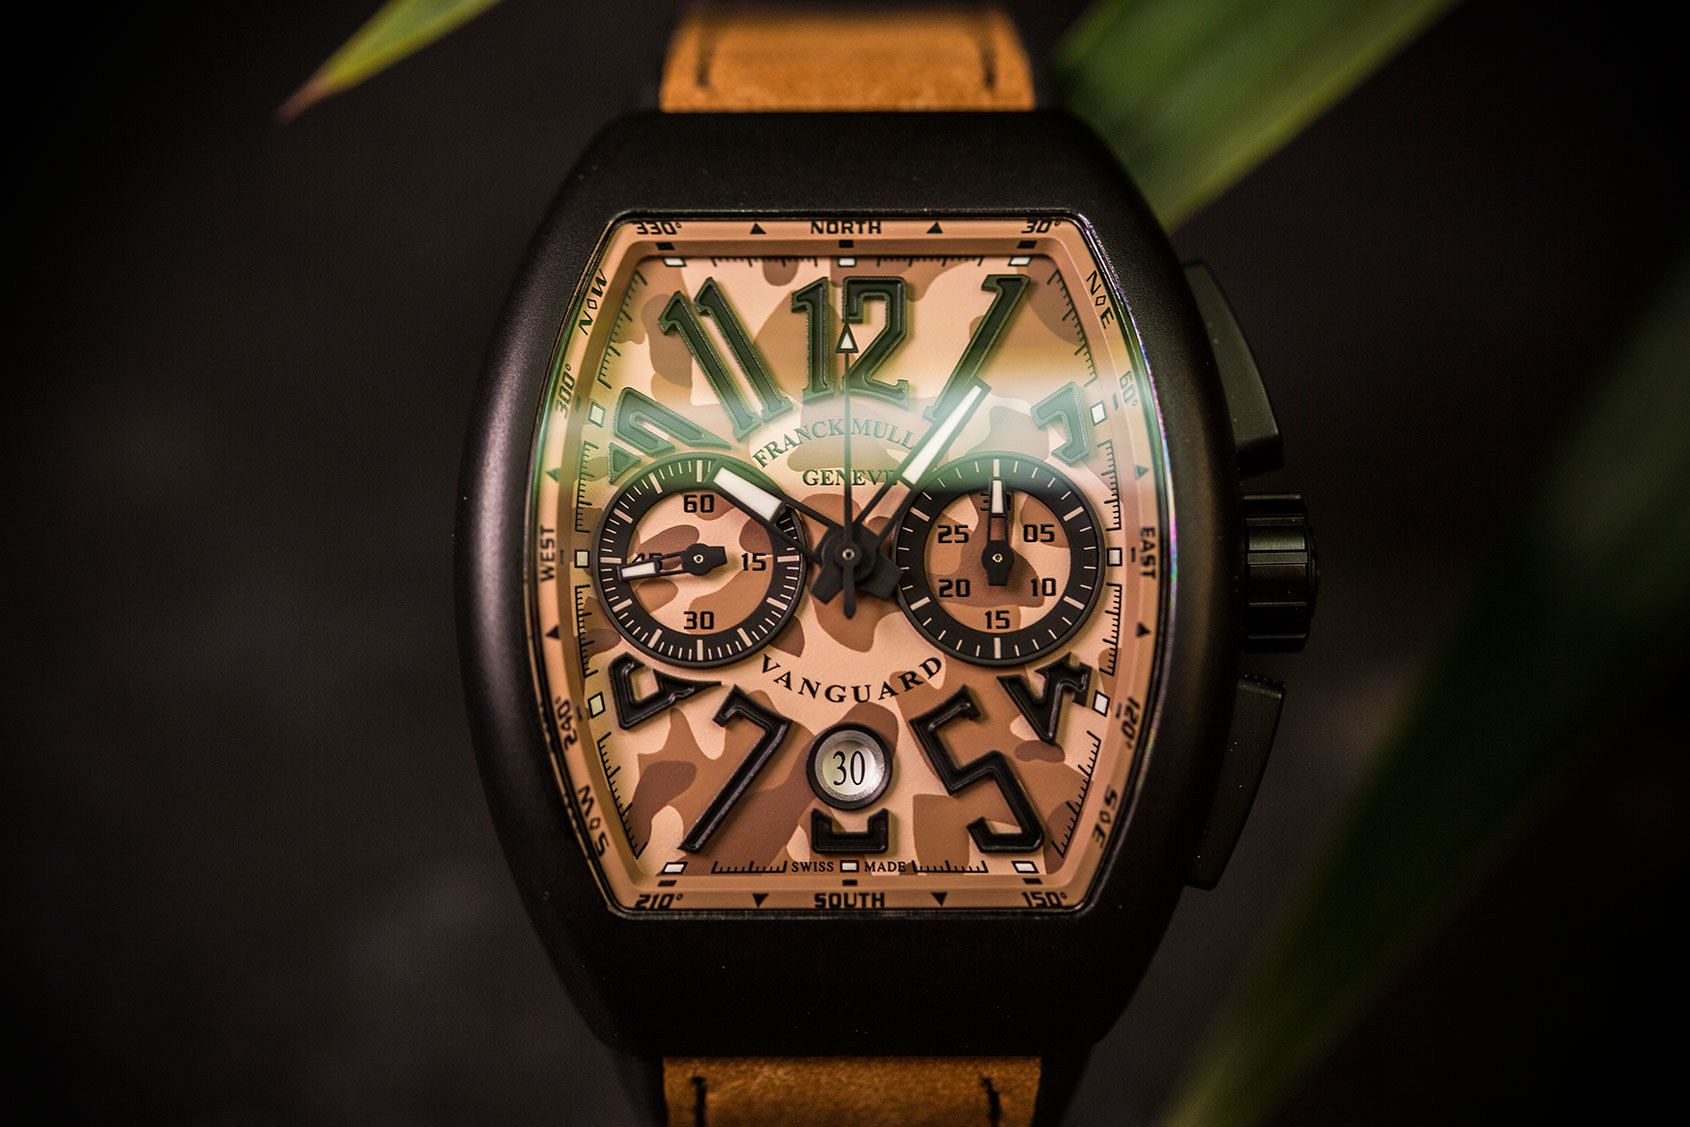 Franck Muller Vanguard Chronograph Camouflage copy watch